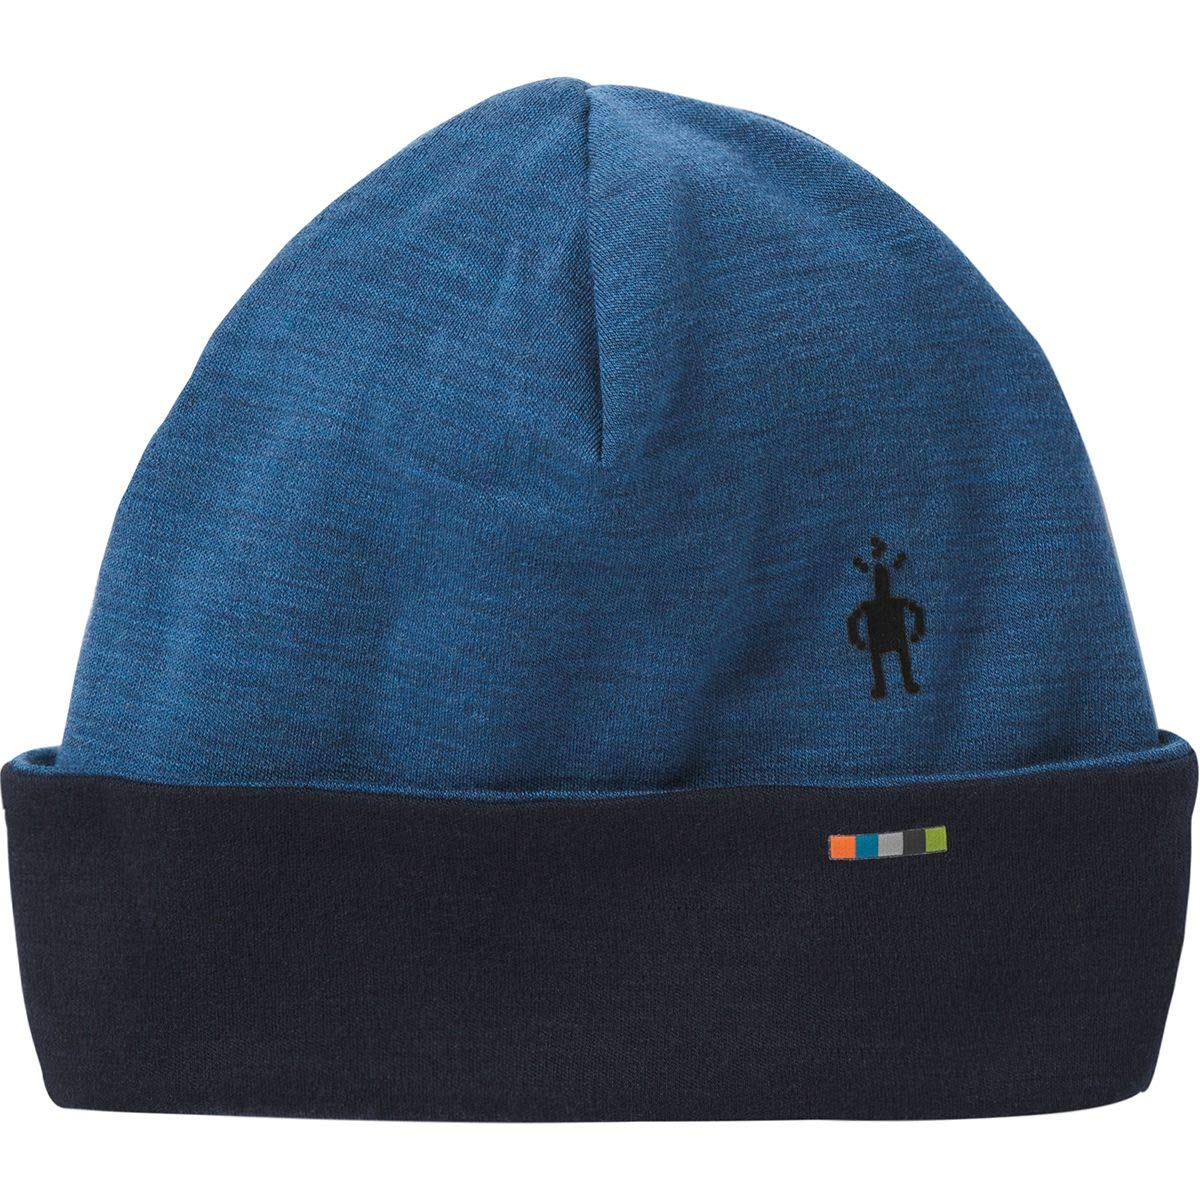 SmartWool Merino 250 Cuffed Beanie Bright Cobalt H 1FM  Amazon.co.uk   Clothing 0c94b3c0fbe0